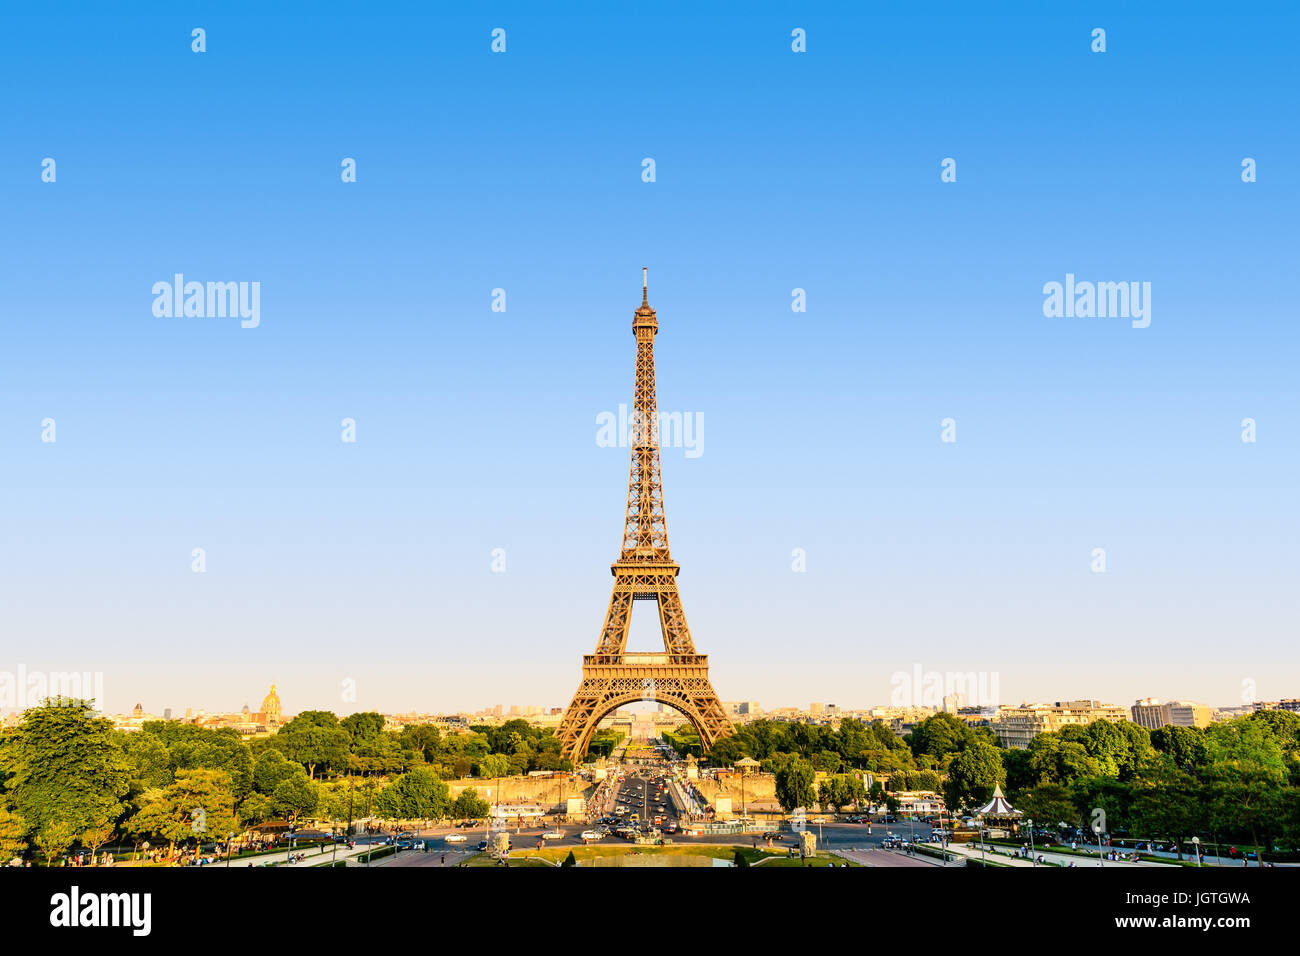 The Eiffel tower seen from the Trocadero esplanade in a warm light at sunset. - Stock Image